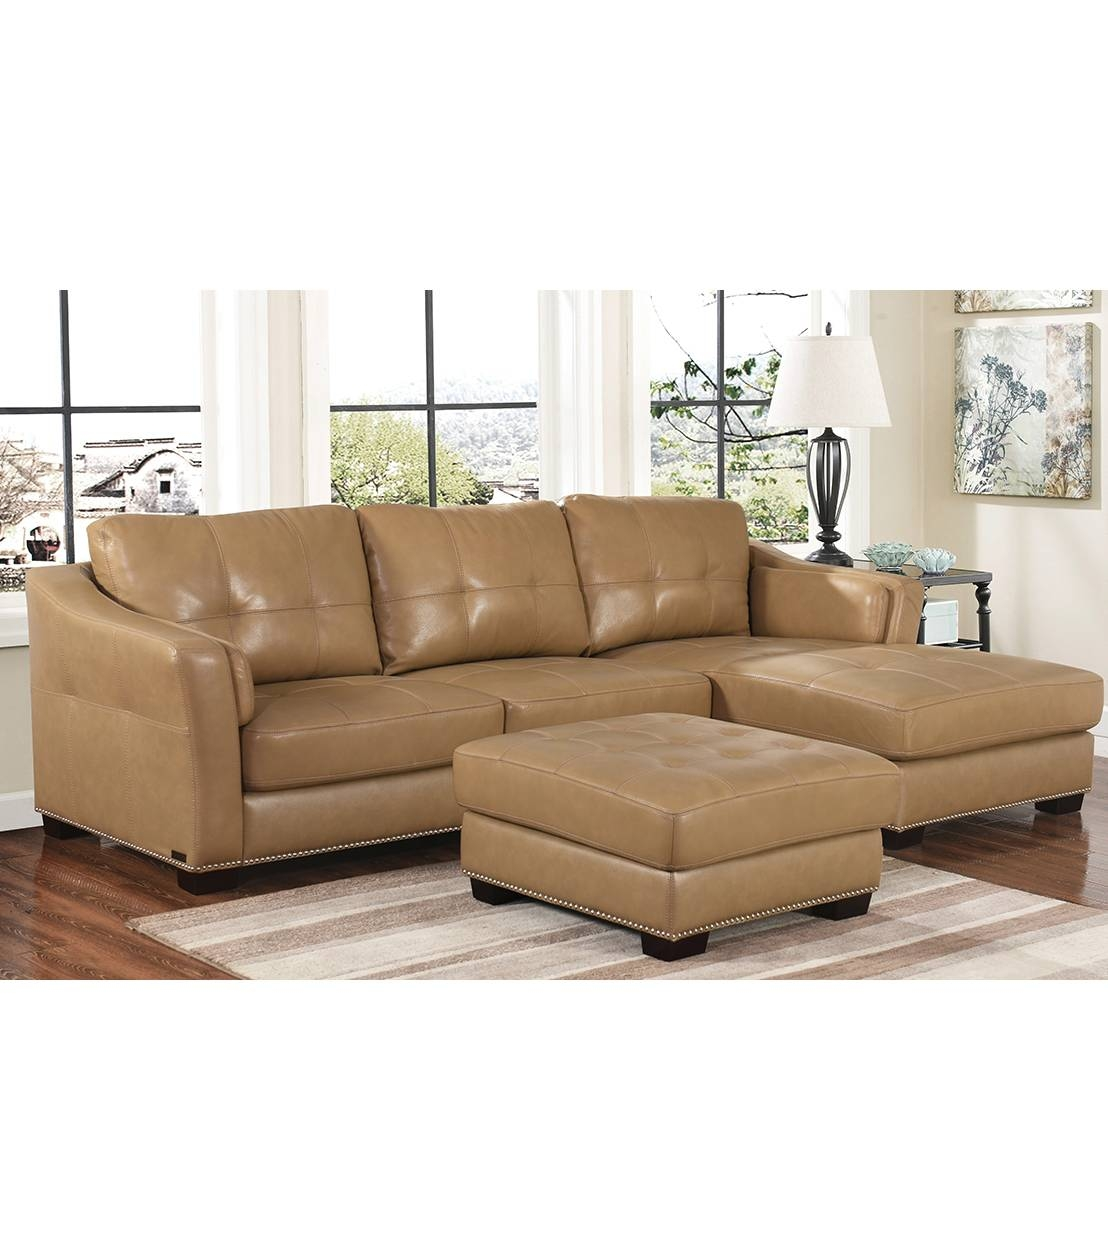 Sectionals : Chelsie Leather Sectional pertaining to Abbyson Sectional Sofa (Image 22 of 30)